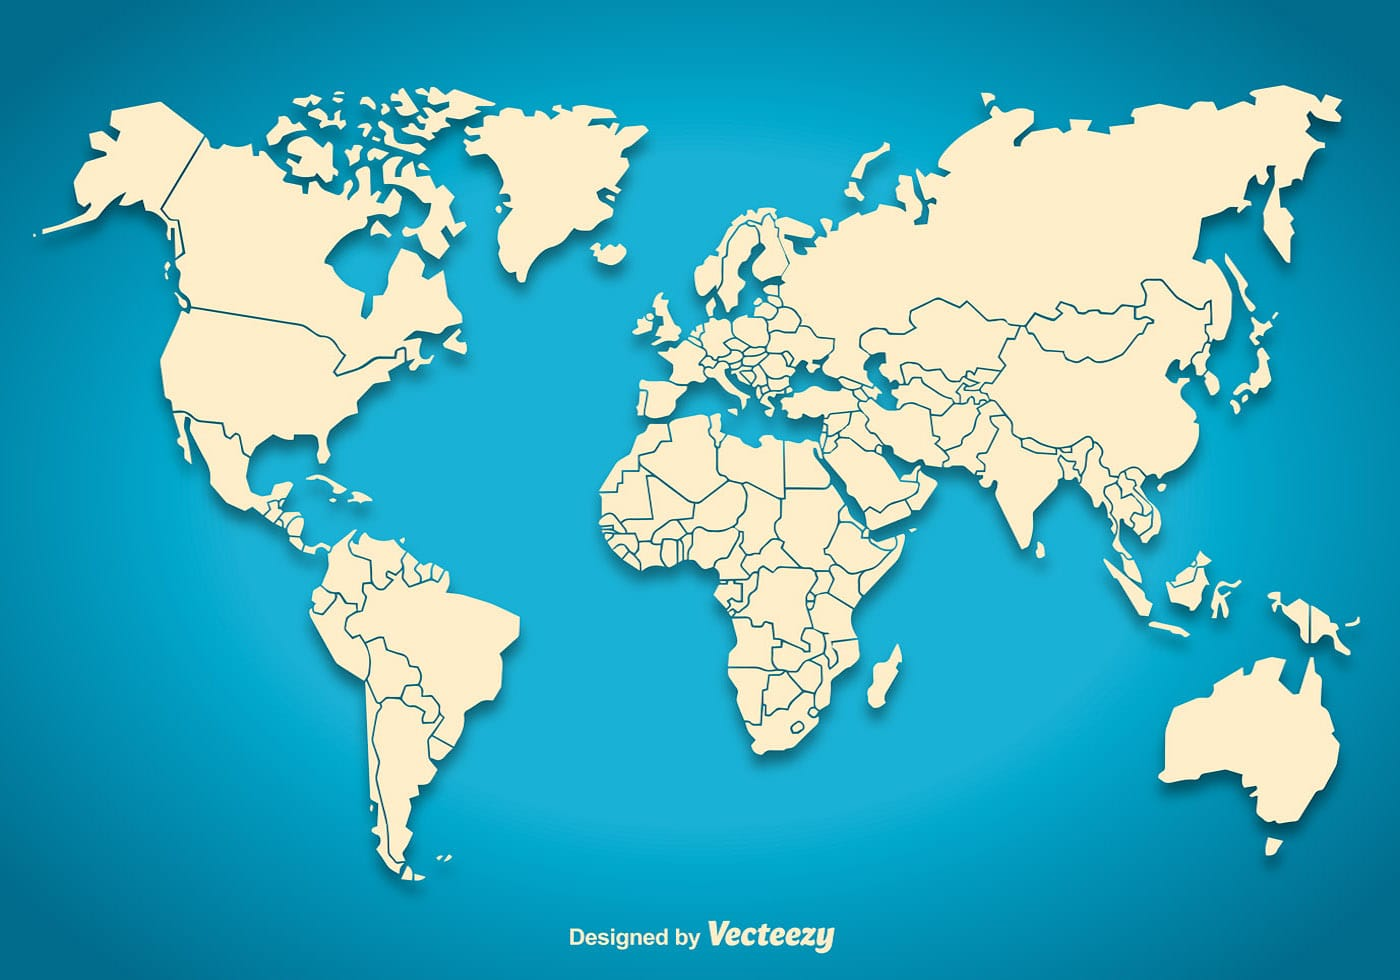 world map background vector - photo #28